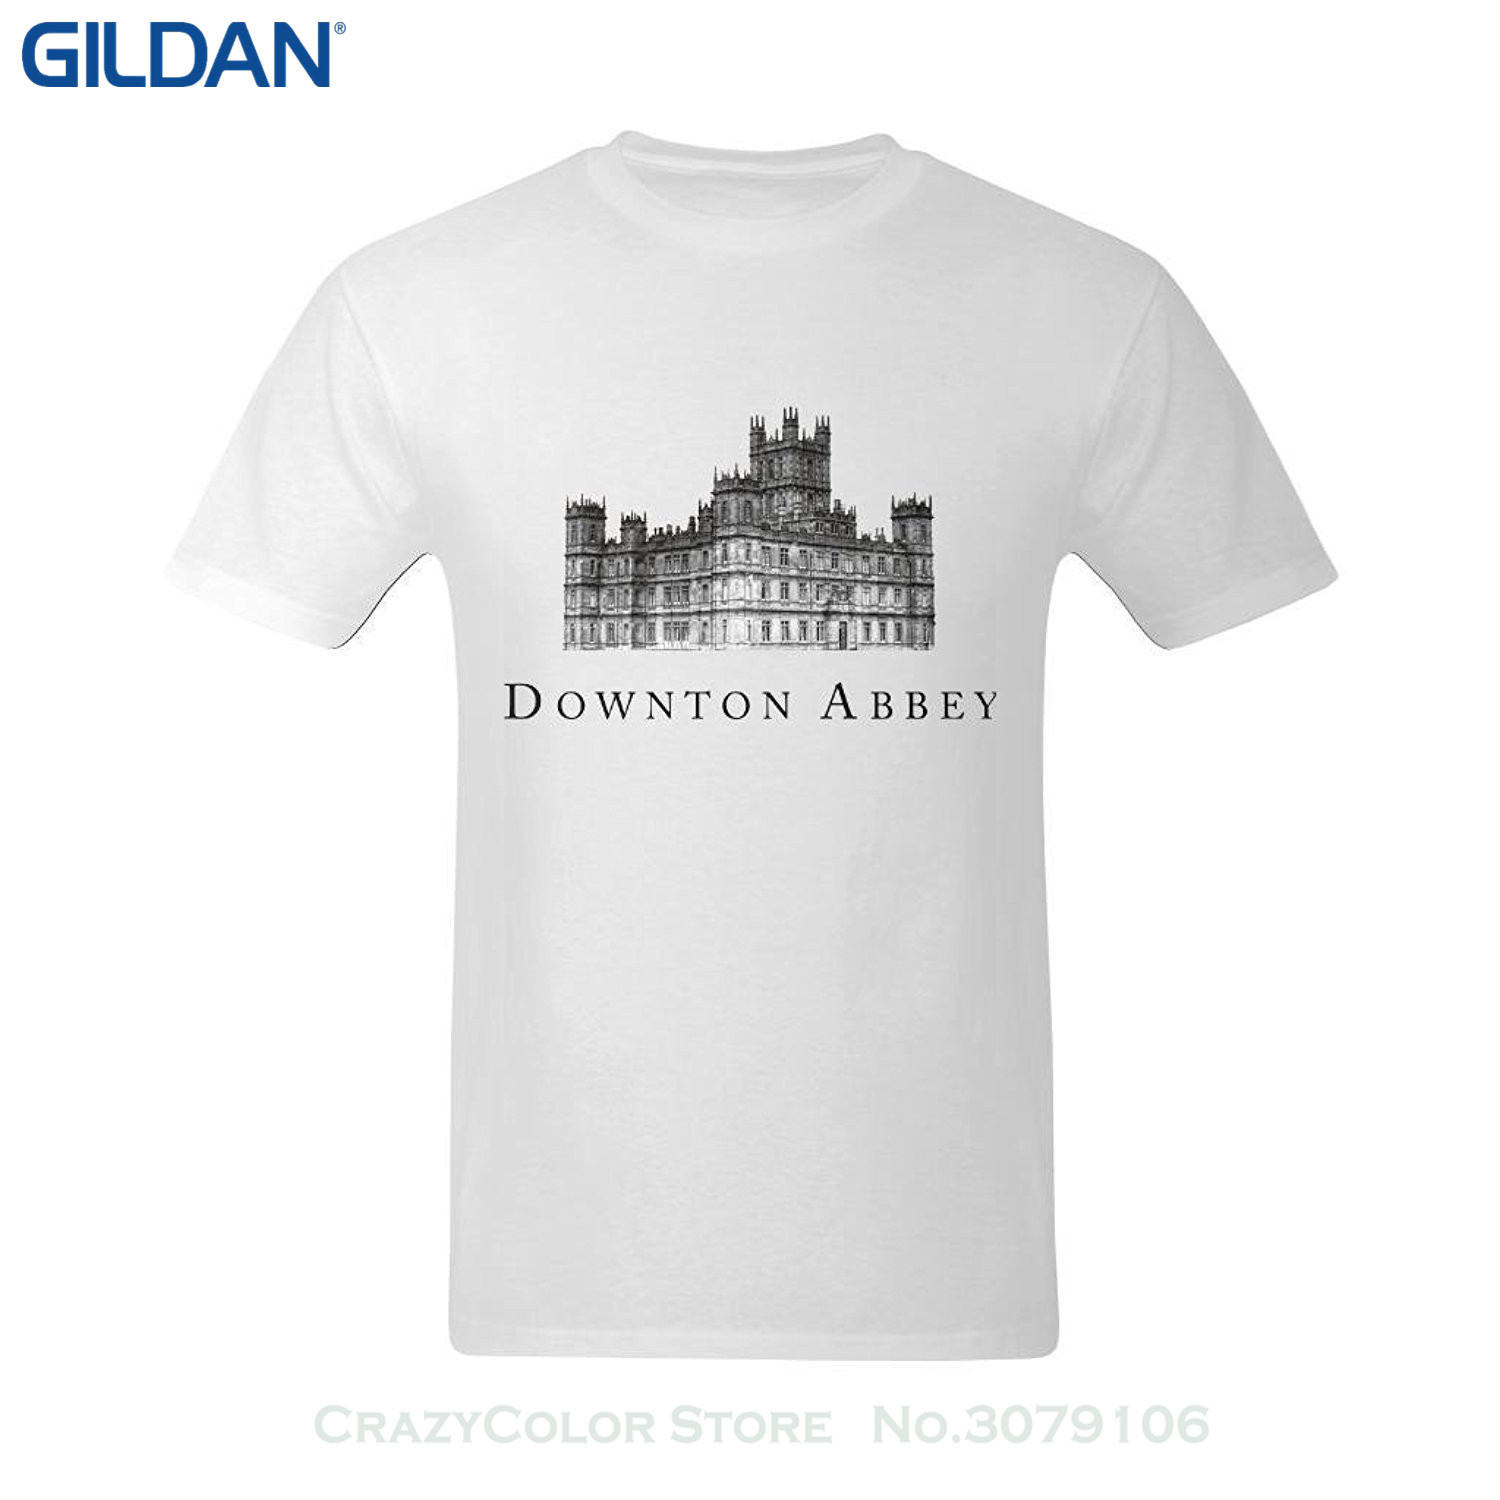 High Quality Custom Printed Tops Hipster Tees T-shirt Men's Downton Abbey Poster T-shirt